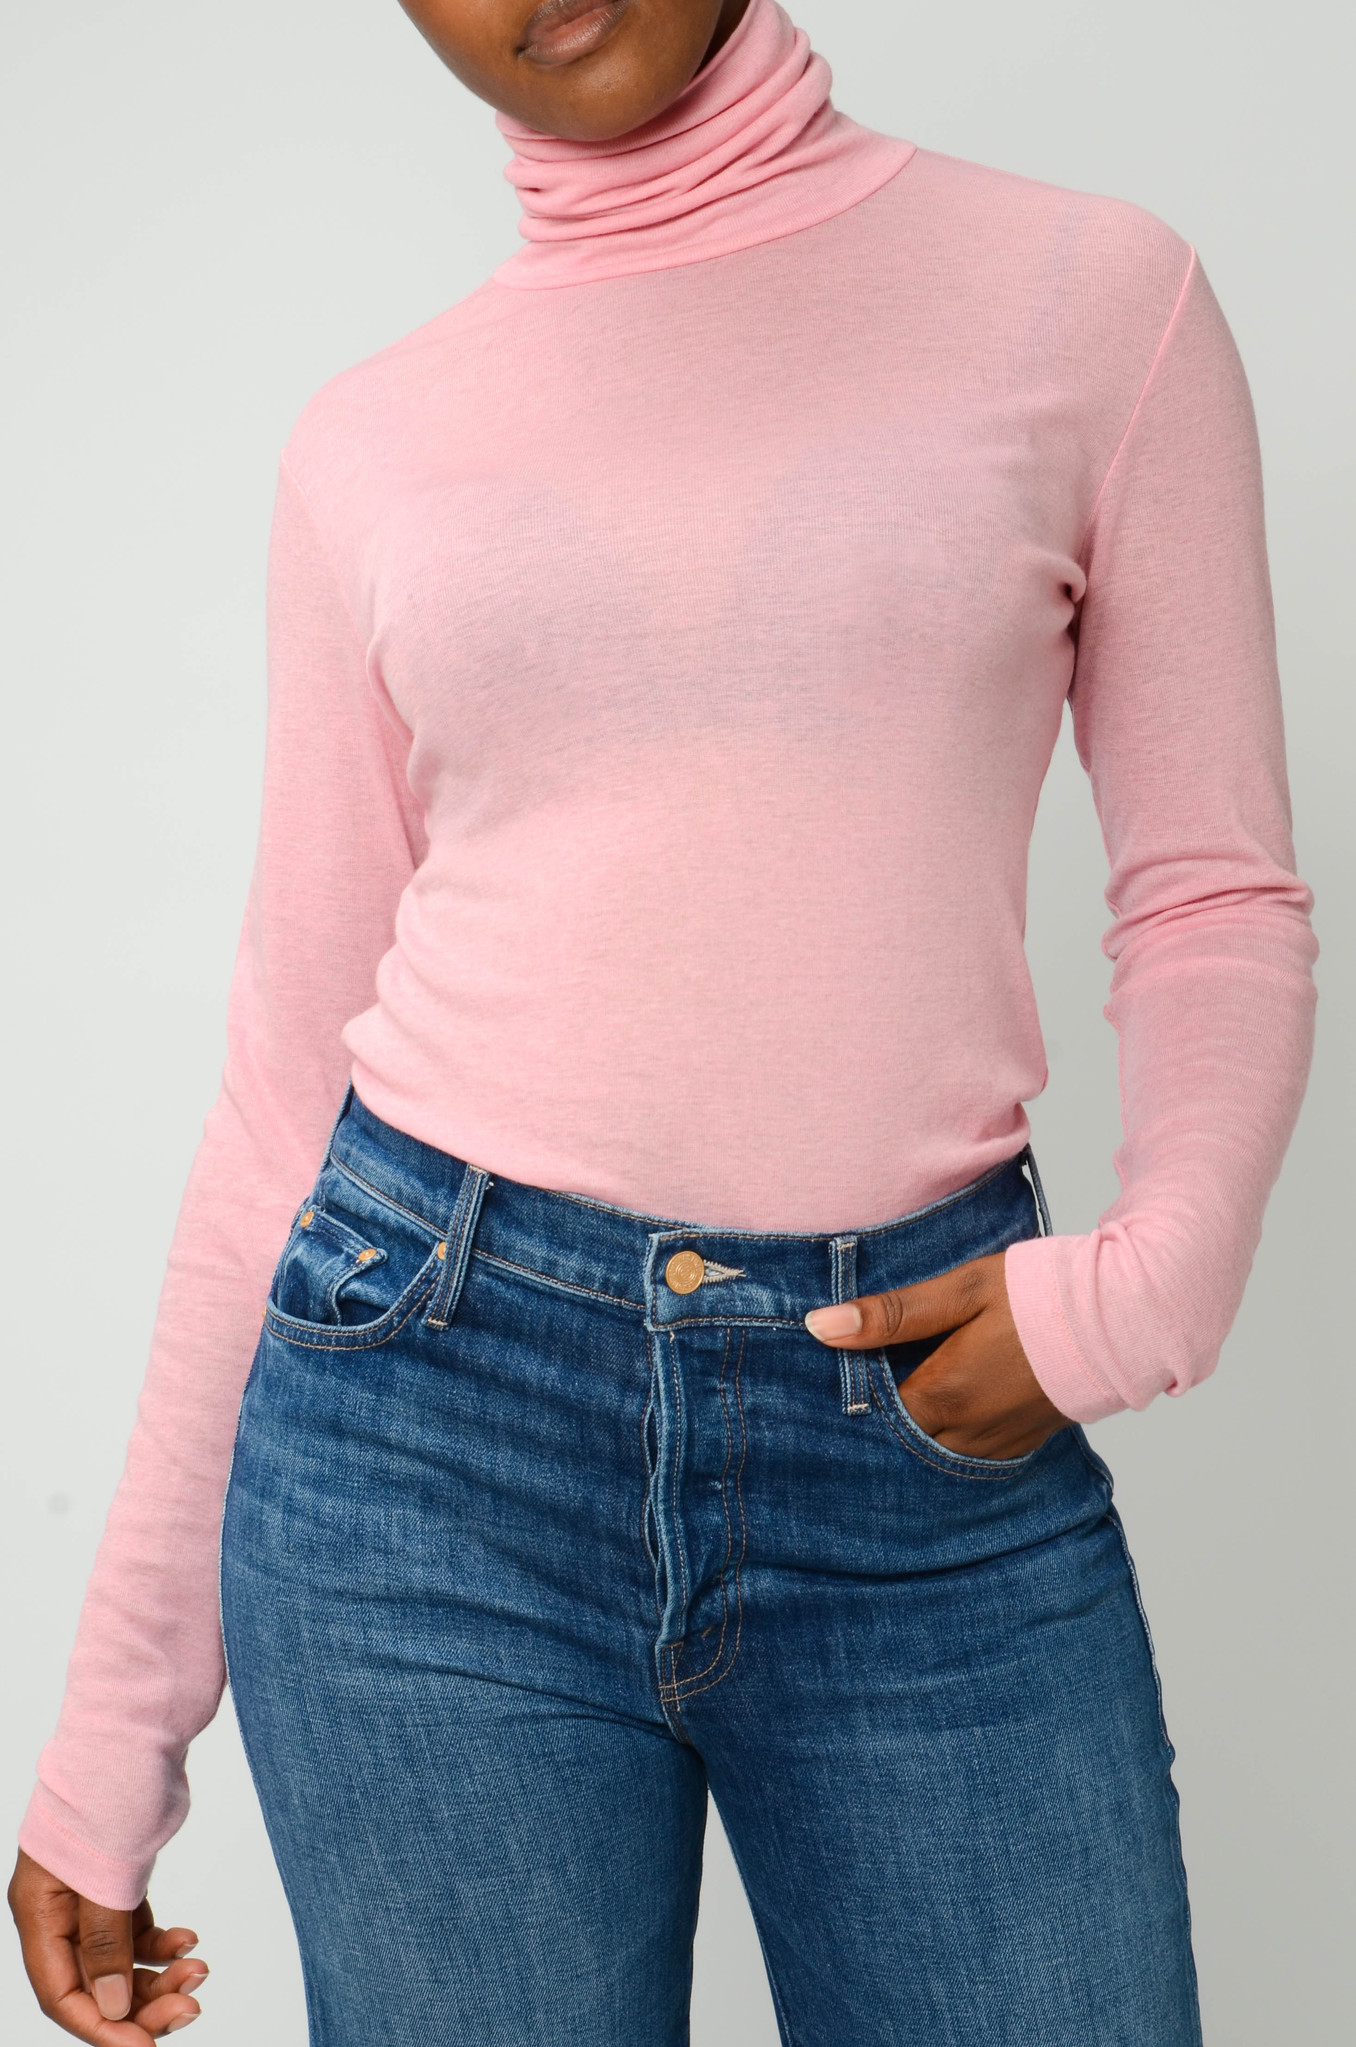 TURTLENECK IN CANDY PINK-5